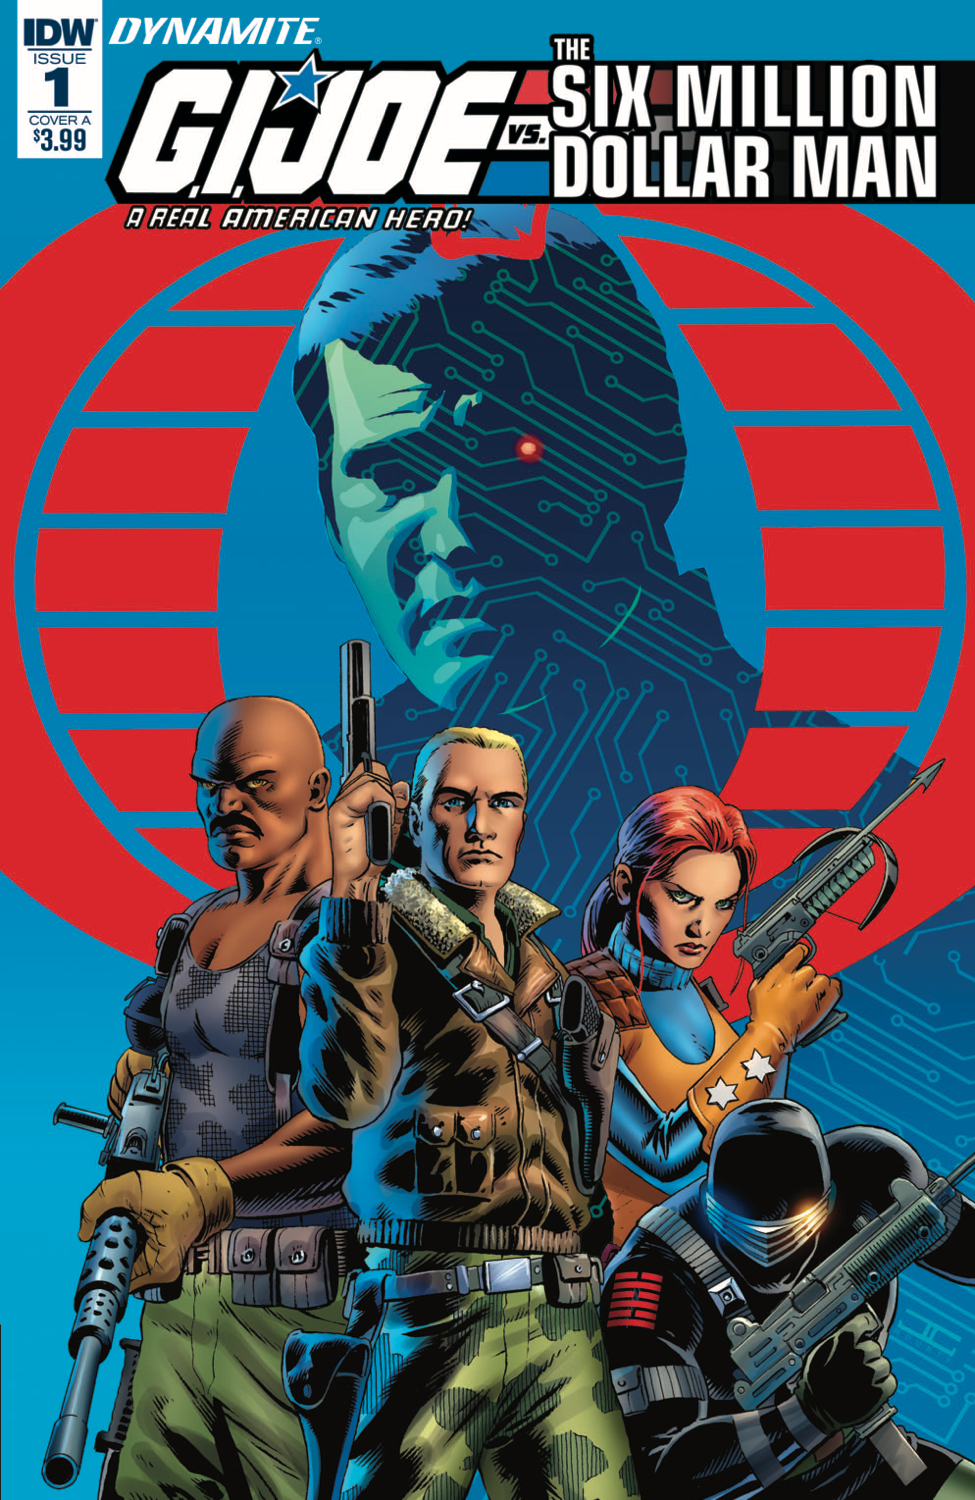 GI JOE VS SIX MILLION DOLLAR MAN #1 CVR A CASSADAY